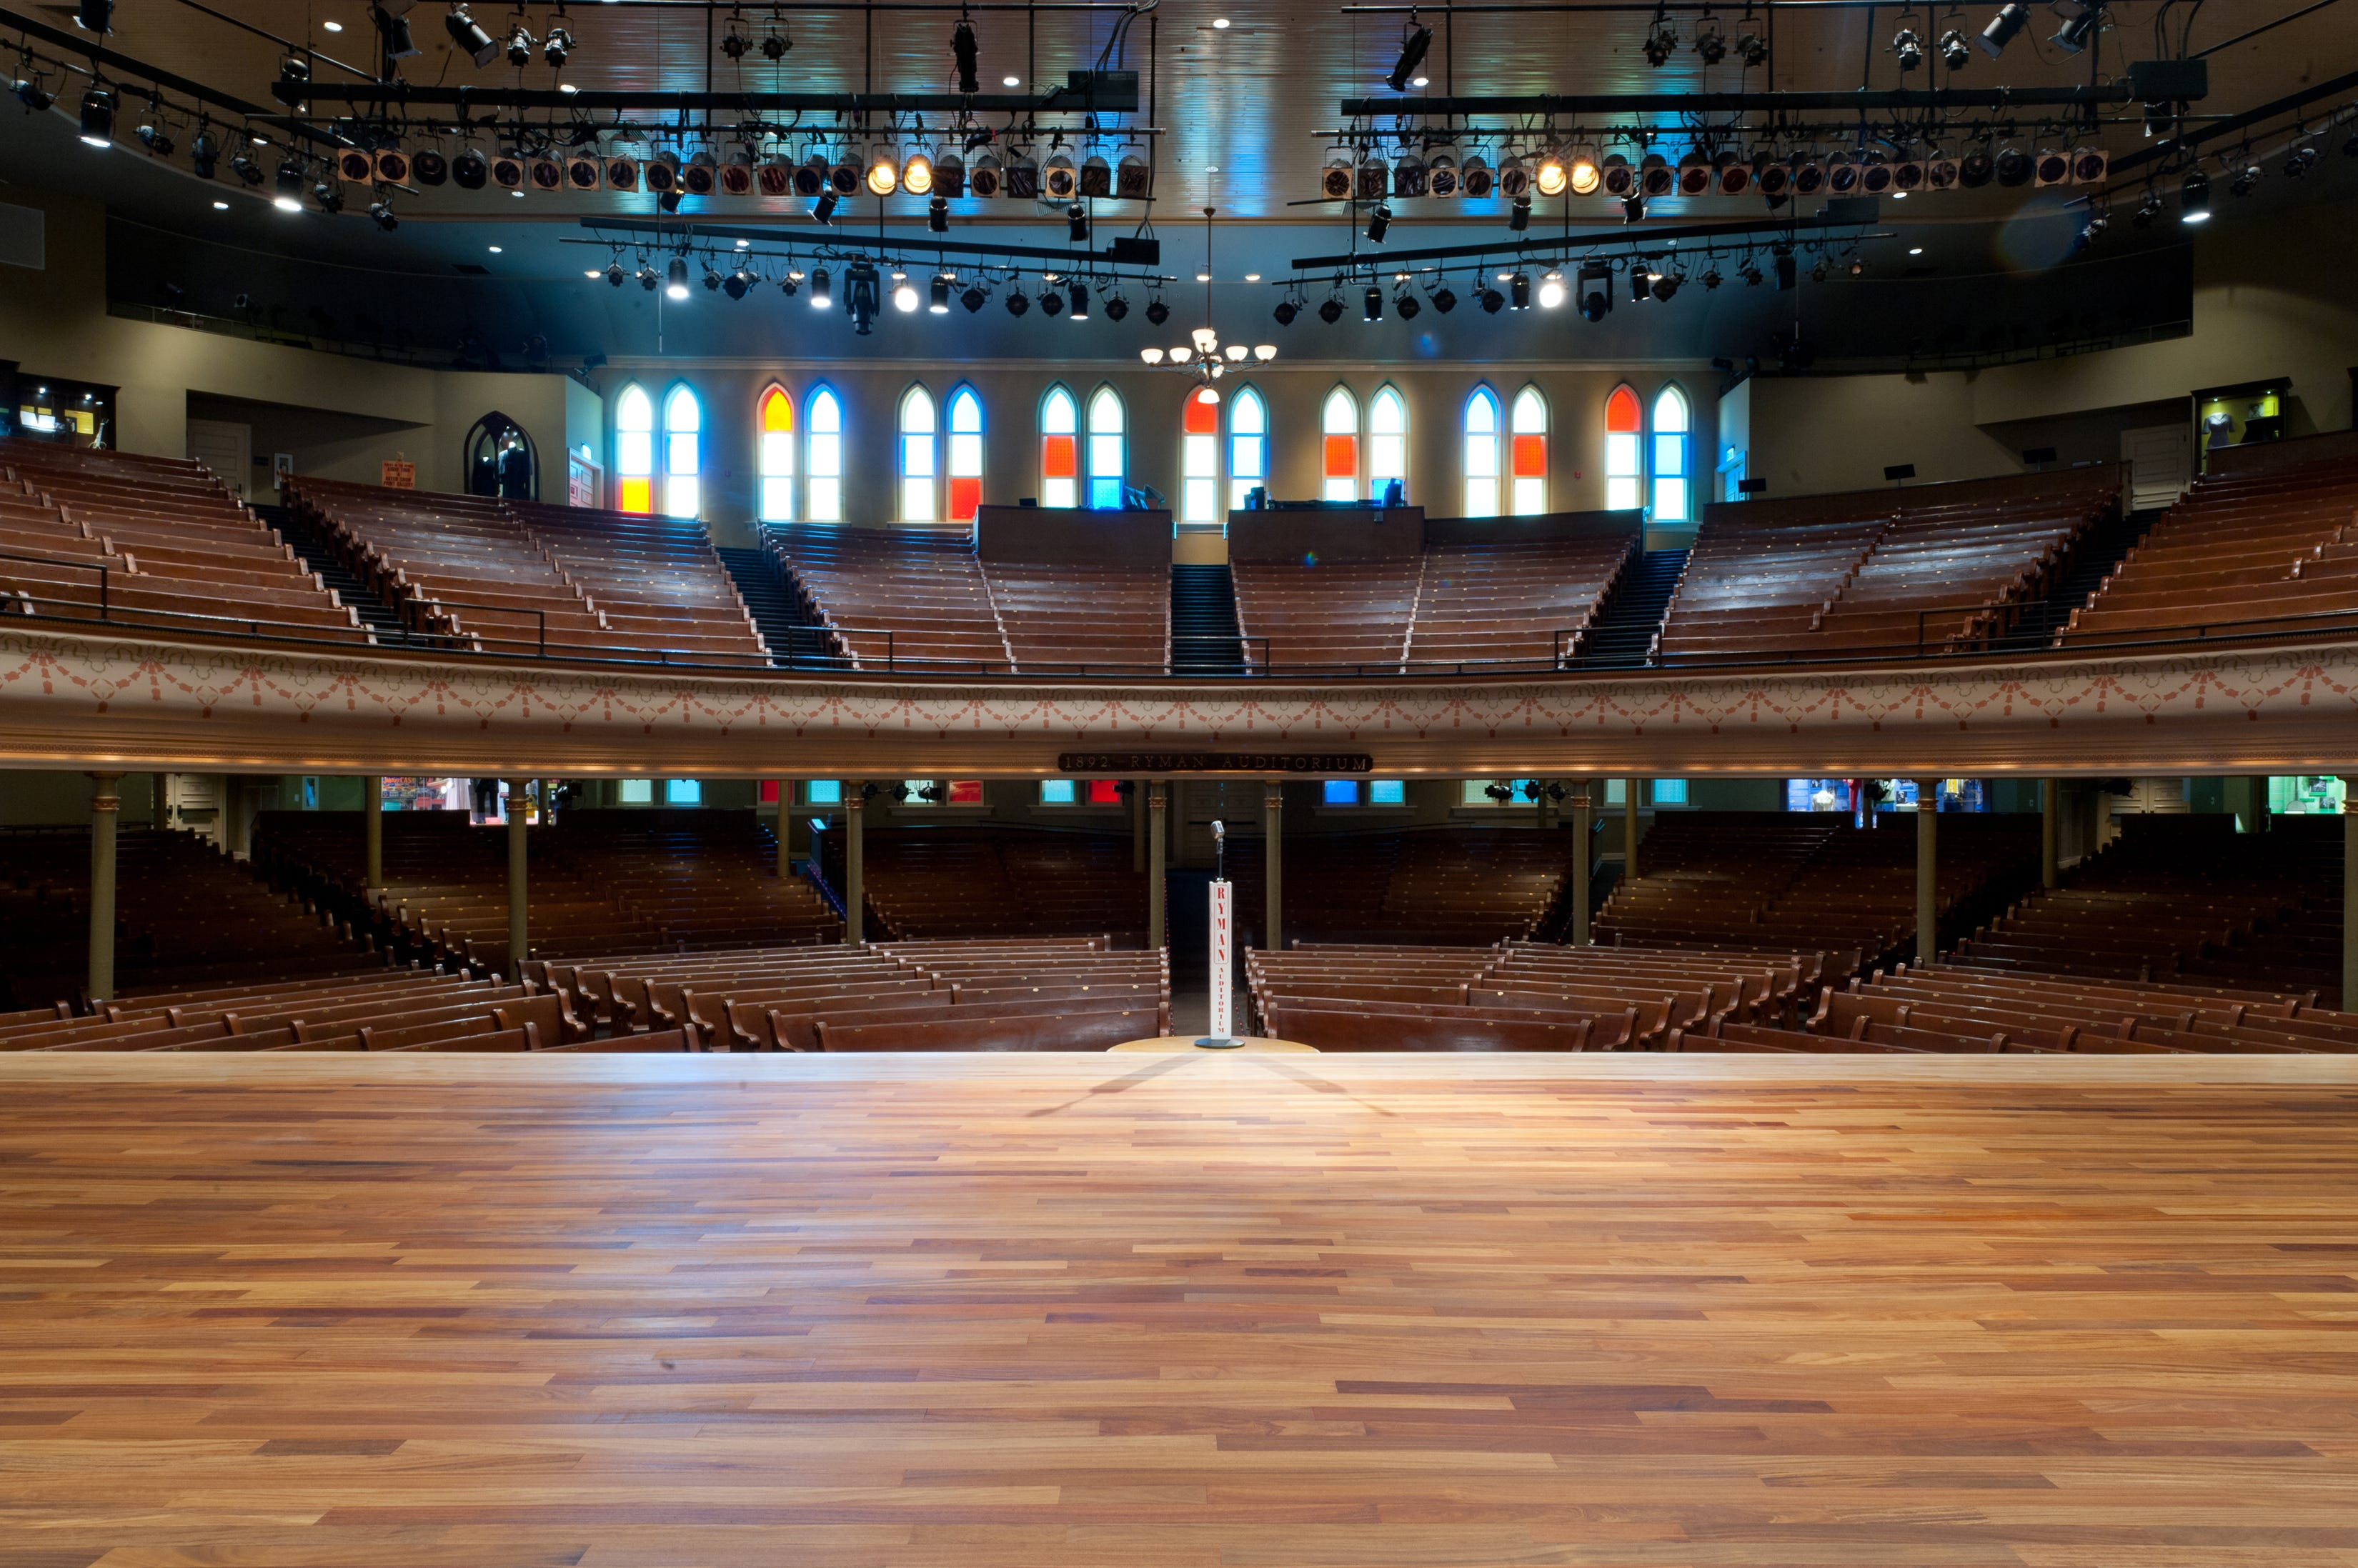 Is the Ryman Auditorium haunted? Find out on this rare tour